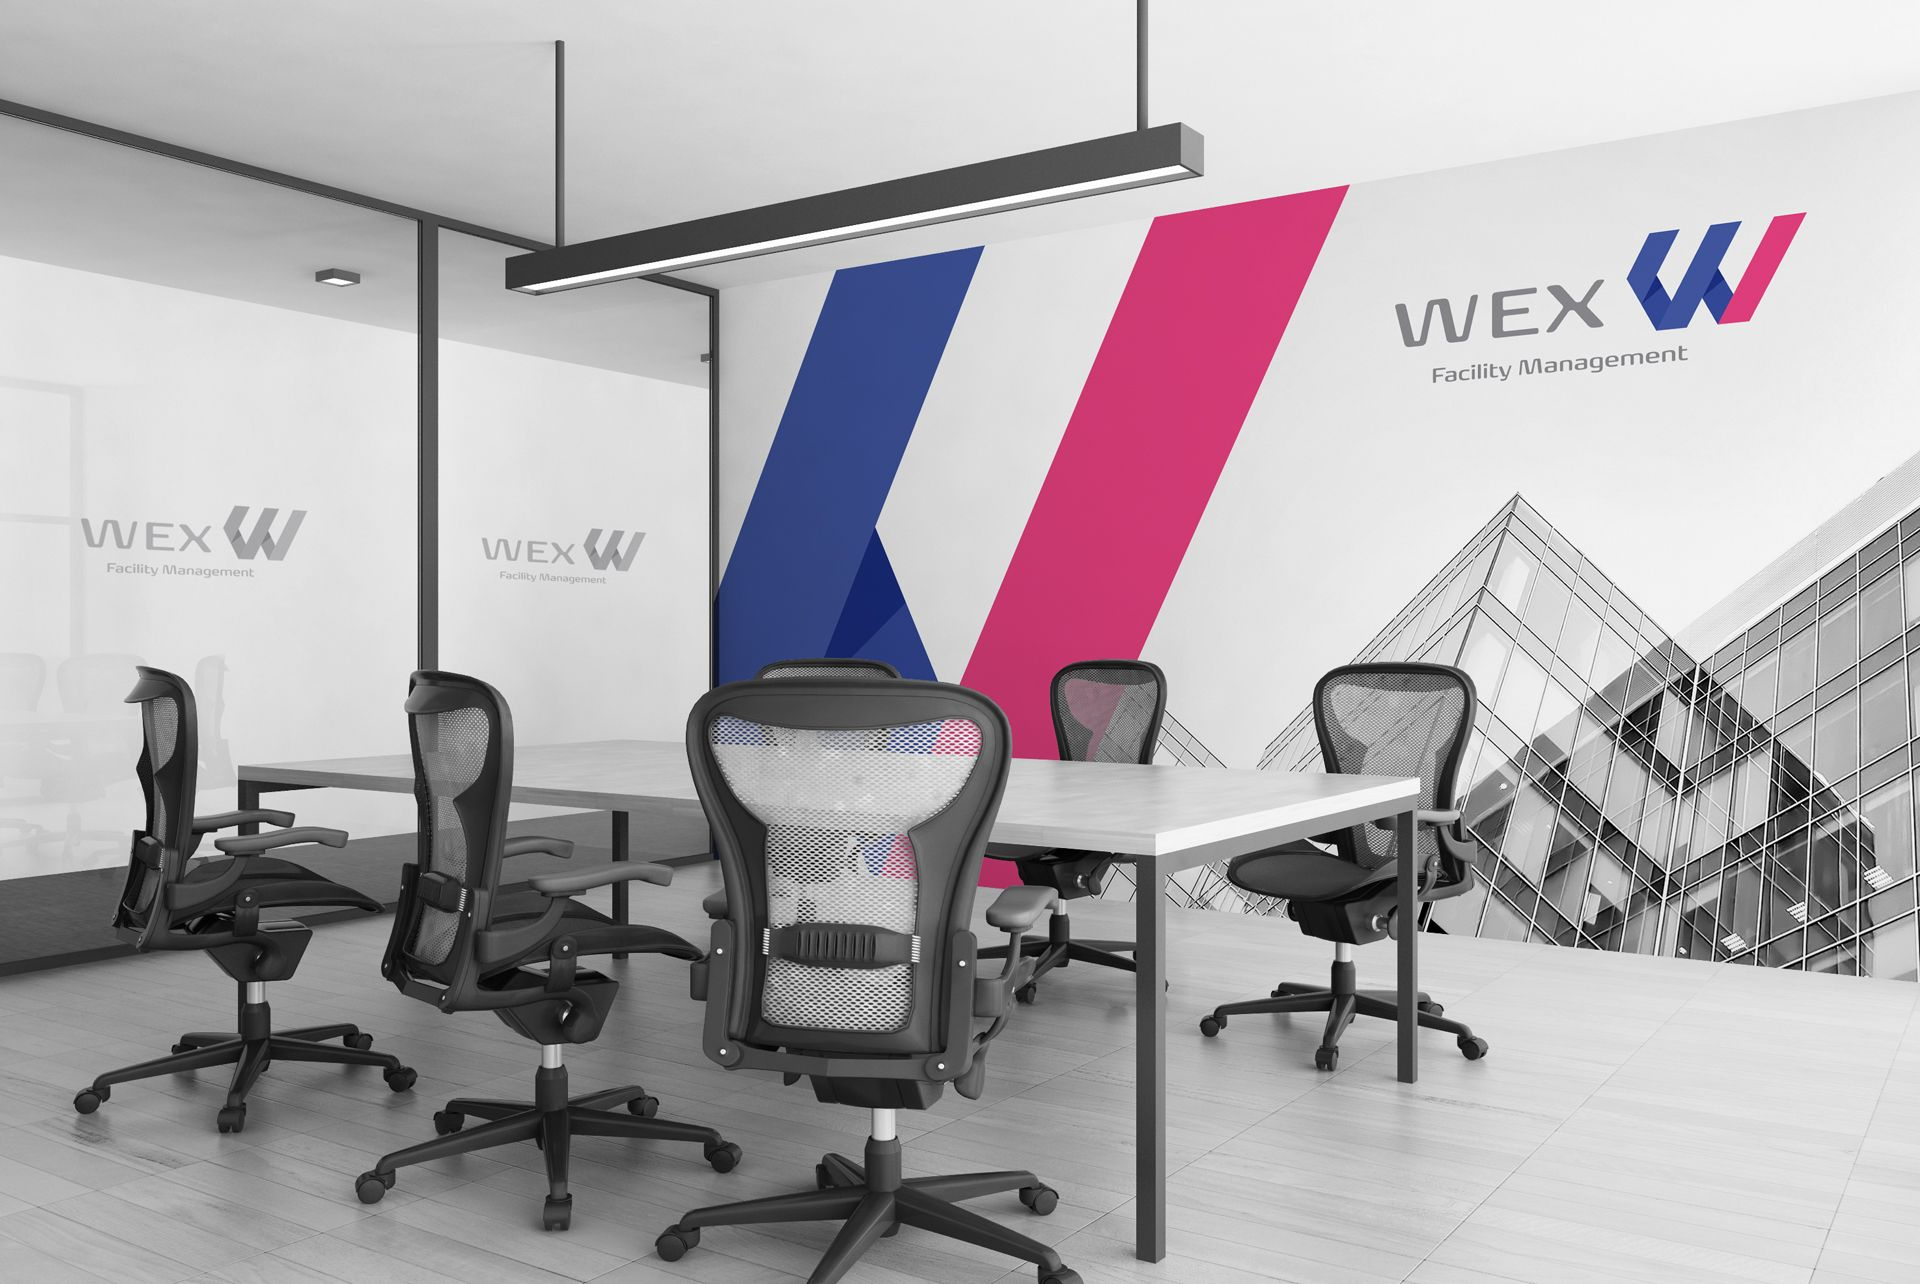 WEX Facility Management Room Wall Branding